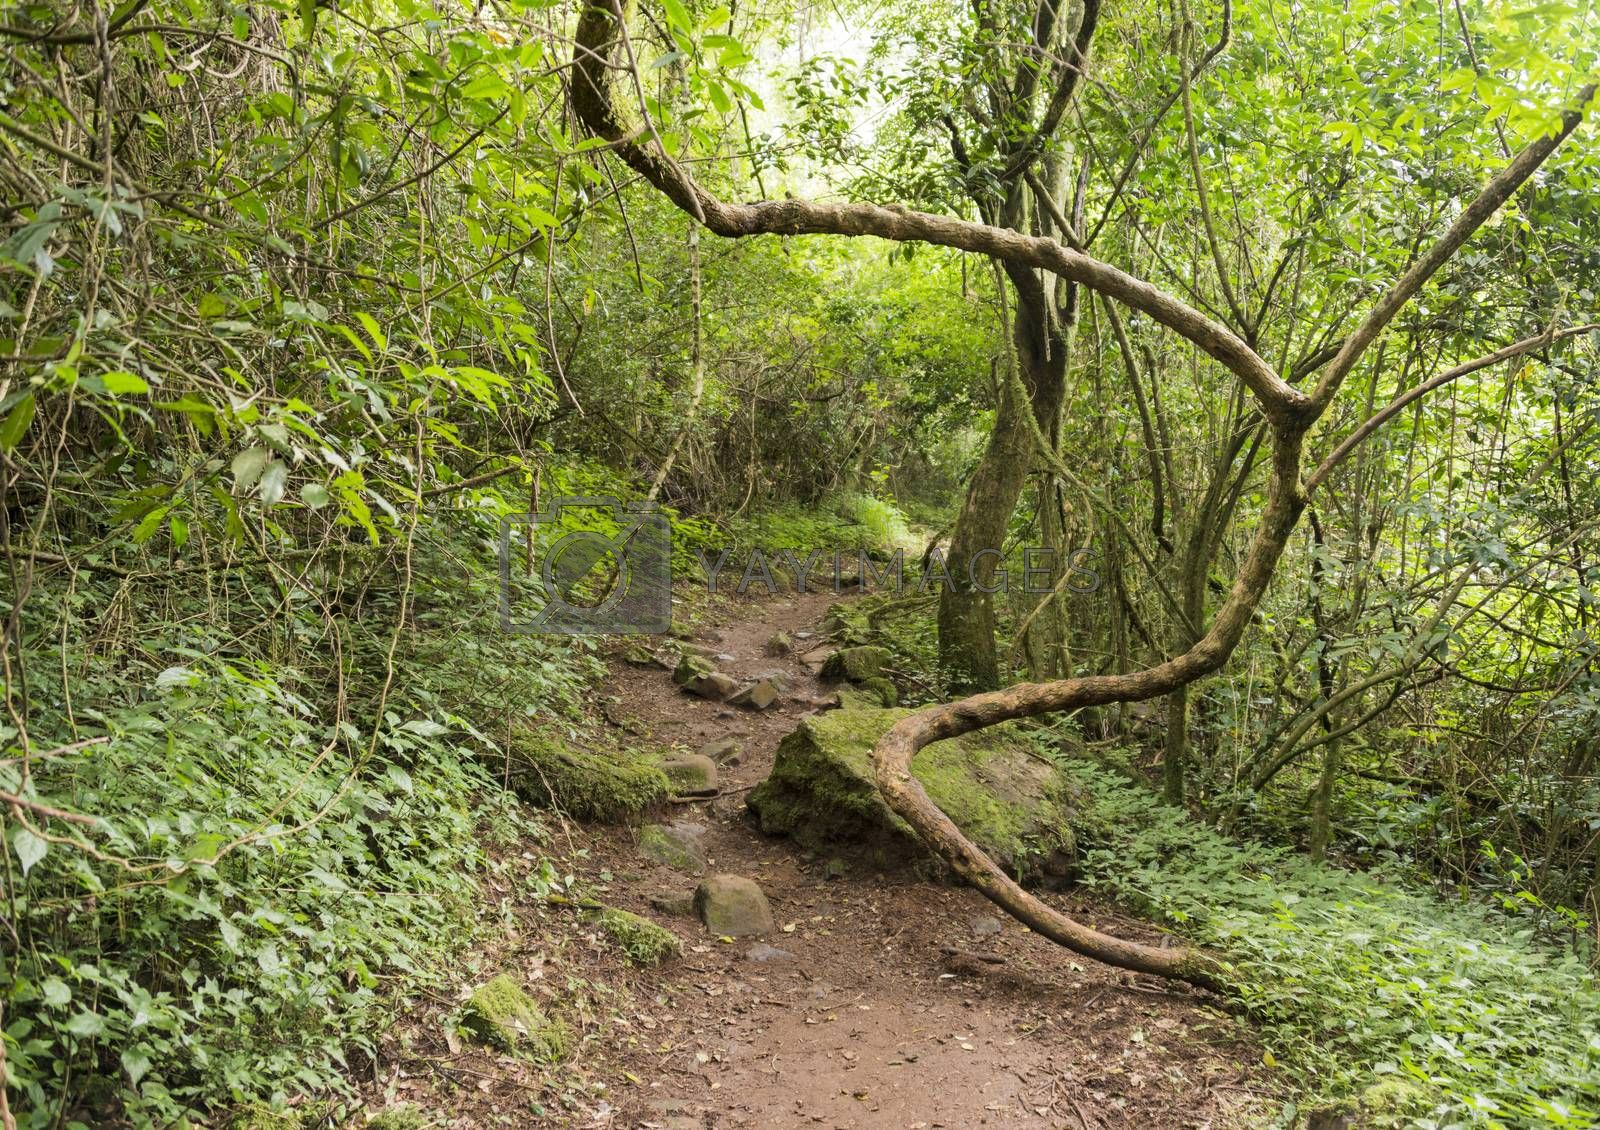 Royalty free image of winding vine branch in tropical forest by compuinfoto